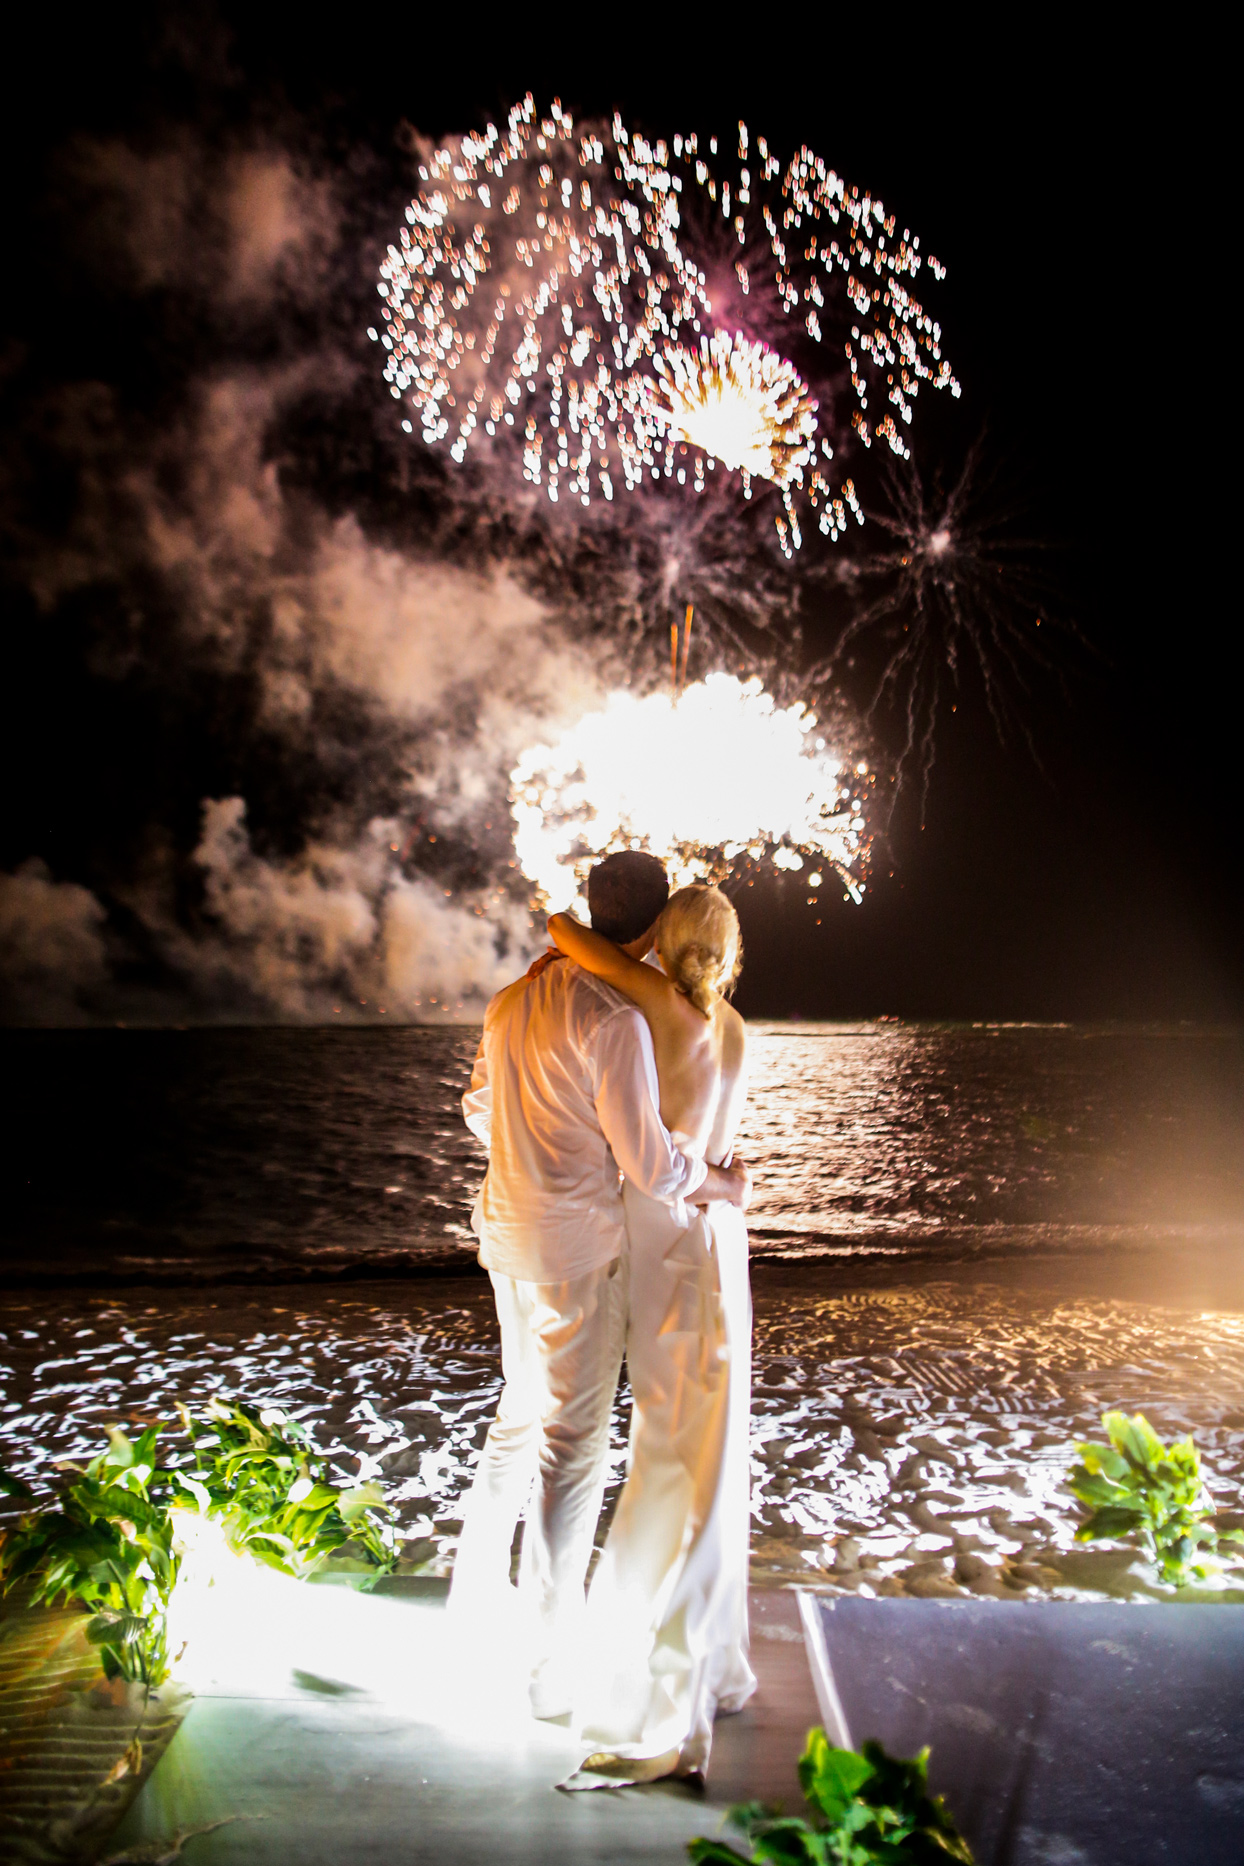 bride and groom watching fireworks display on the beach